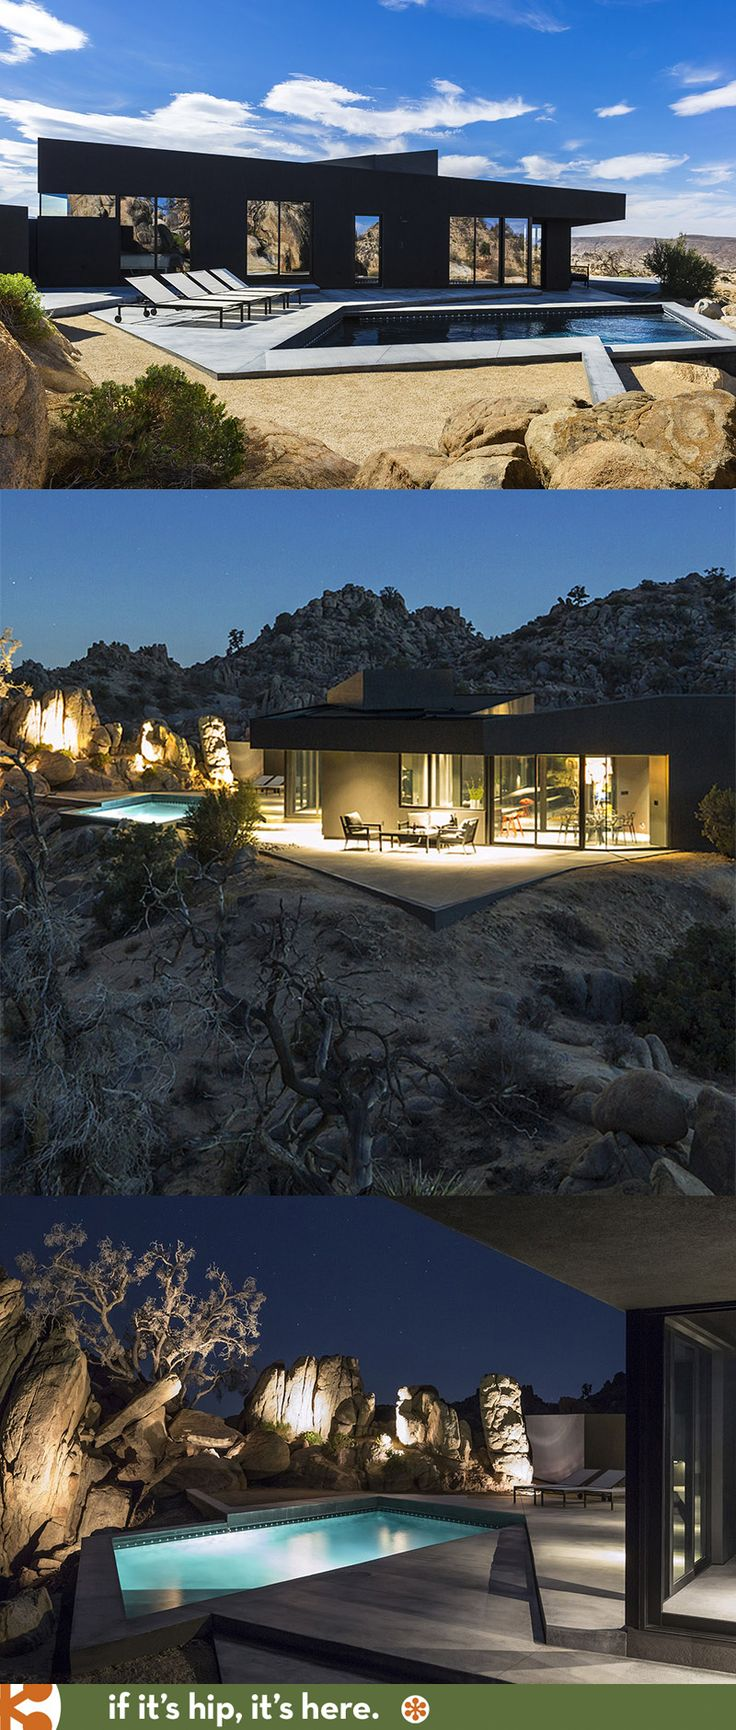 The Black Desert House In the Middle Of Yucca Valley